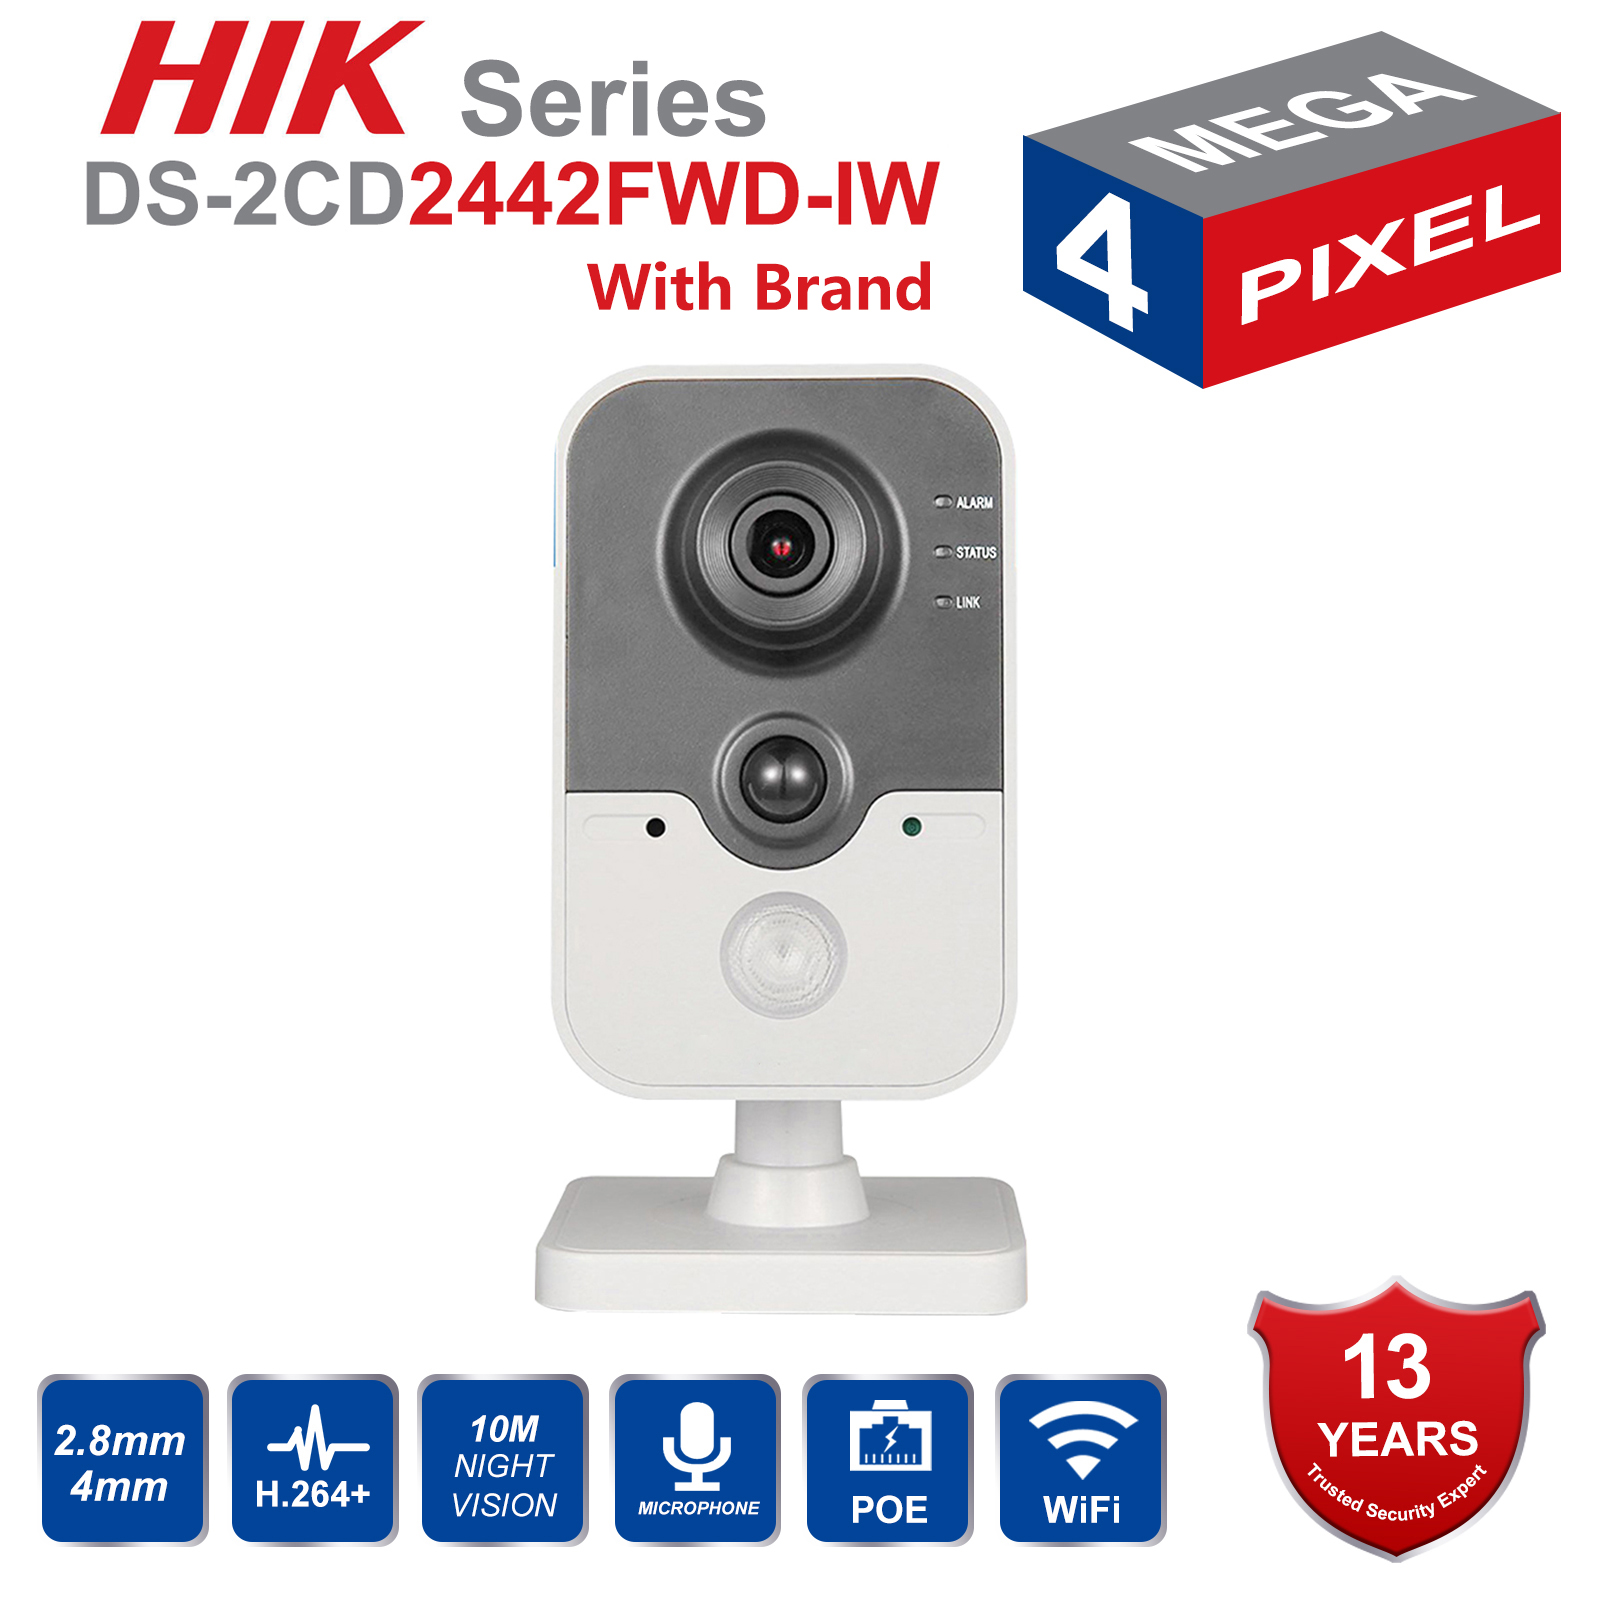 Original HIK Wireless Security Camera DS-2CD2442FWD-IW poe IP camera onvif Indoor 4MP IR Cube WiFi beveiligings camOriginal HIK Wireless Security Camera DS-2CD2442FWD-IW poe IP camera onvif Indoor 4MP IR Cube WiFi beveiligings cam